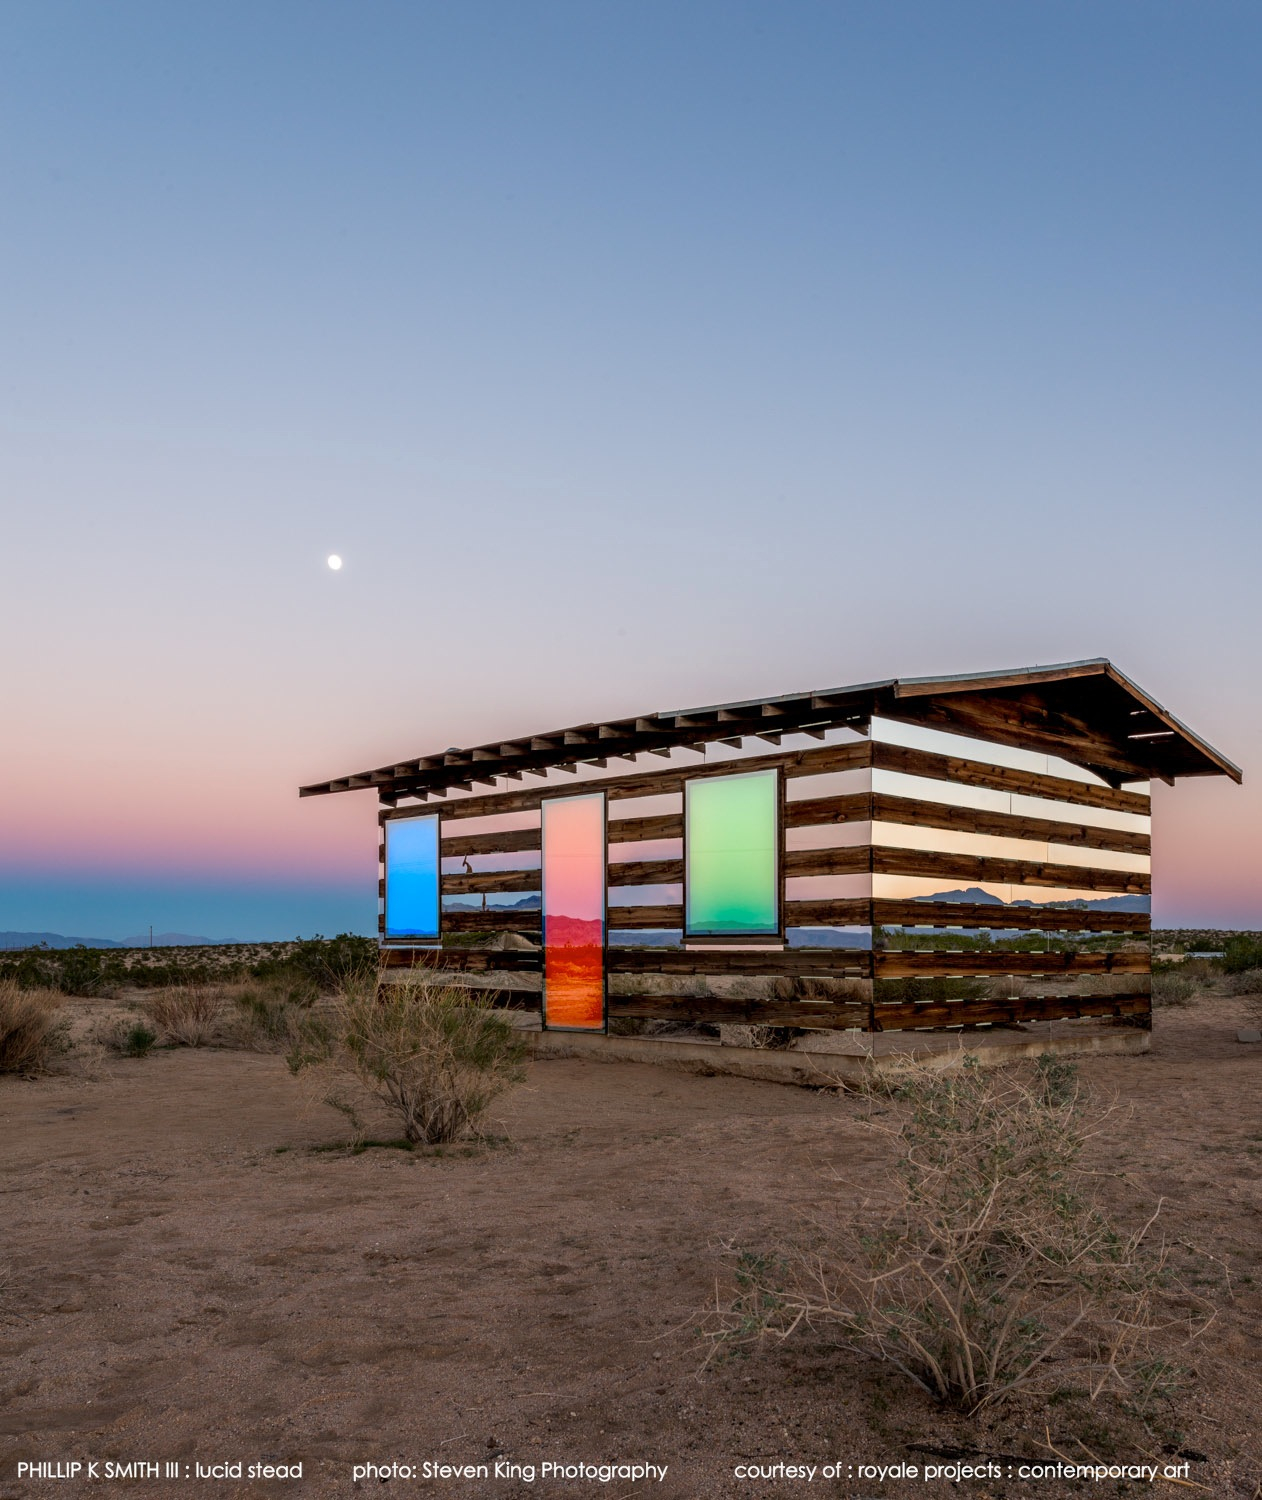 Lucid Stead by Phillip K. Smith III in Joshua Tree, CA. Photo by Steven King Photography.